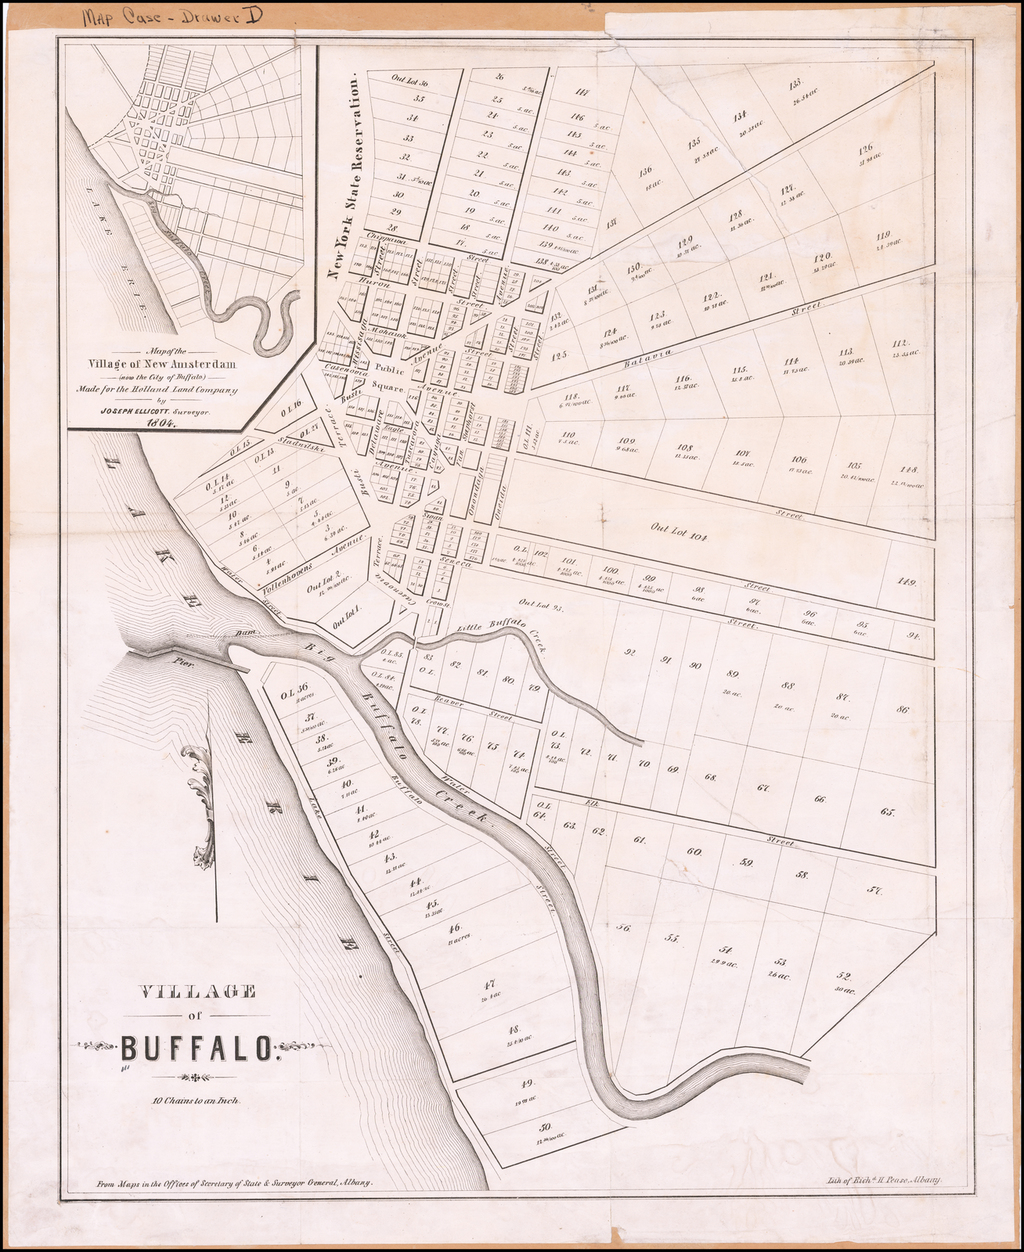 Village of Buffalo By R.H. Pease